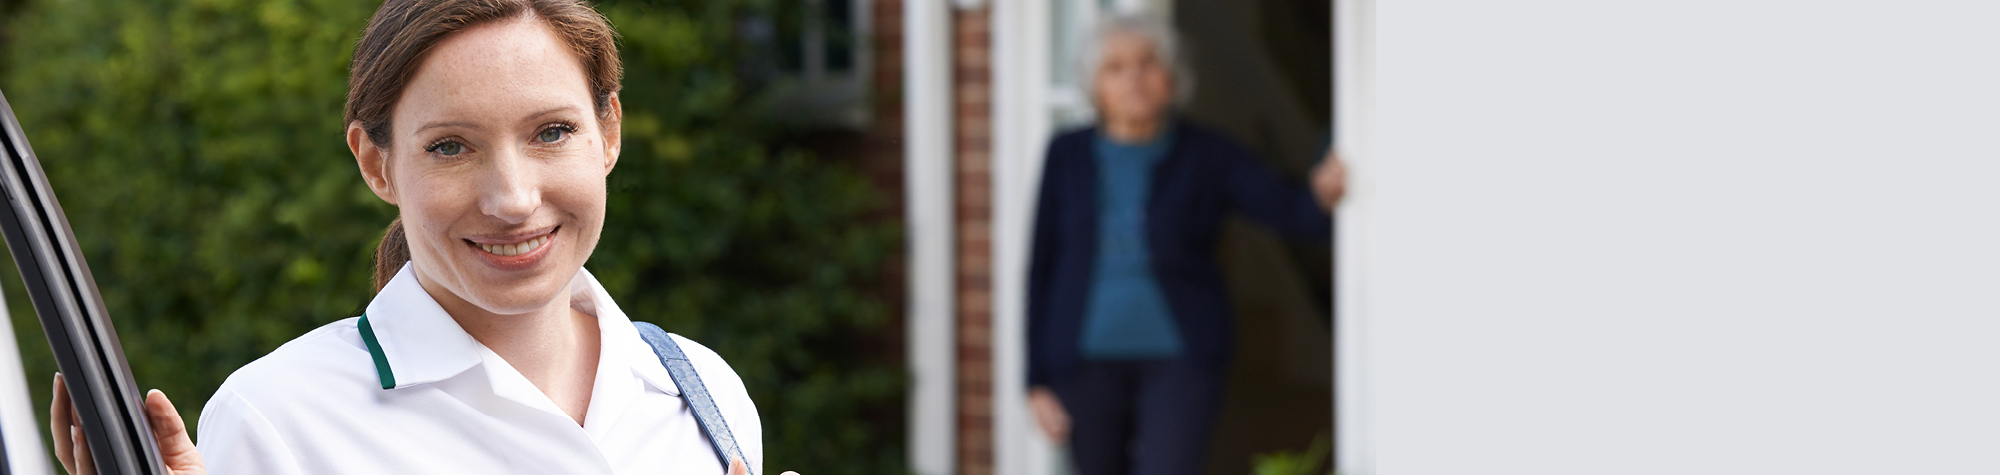 Search Consultancy Care Home Jobs Header Image. Healthcare Header Image Featuring Smiling Care Assistant Outside Care Home.